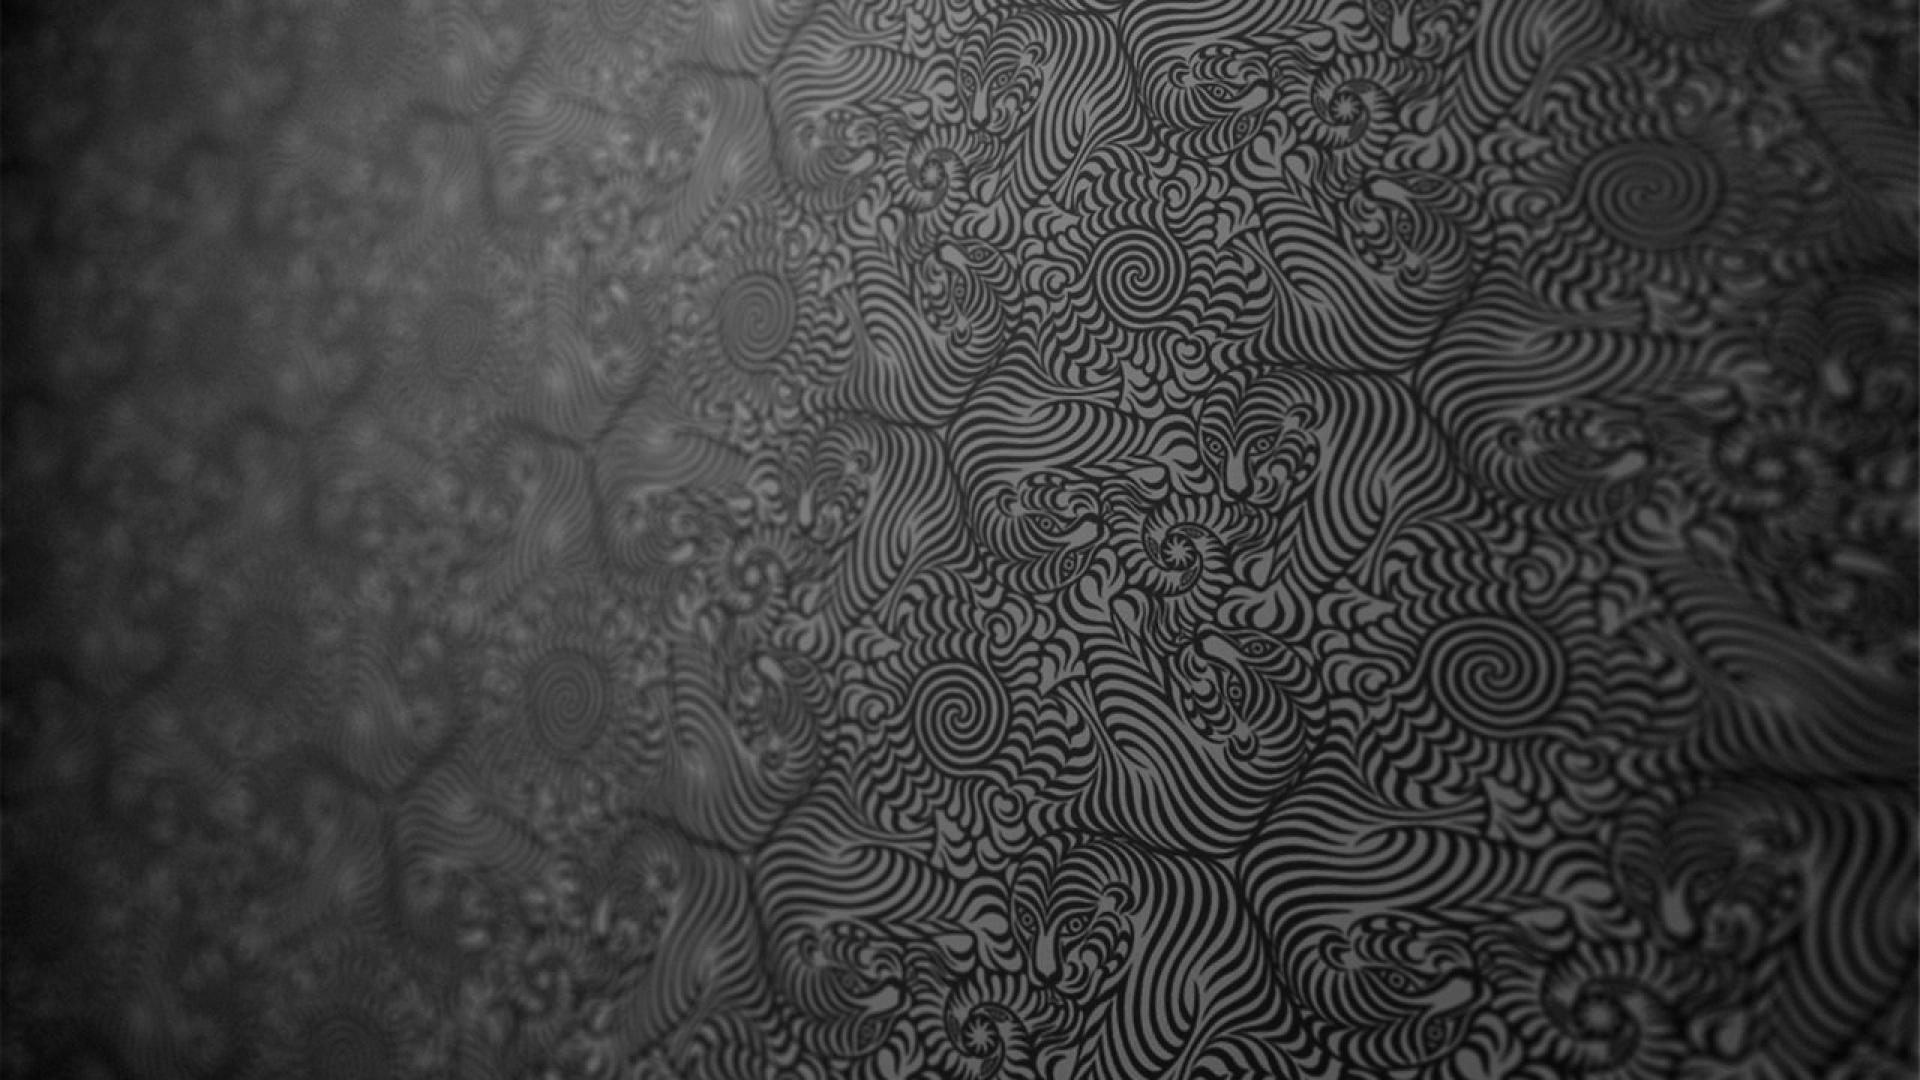 50 Best Psychedelic And Trippy Wallpapers In HD